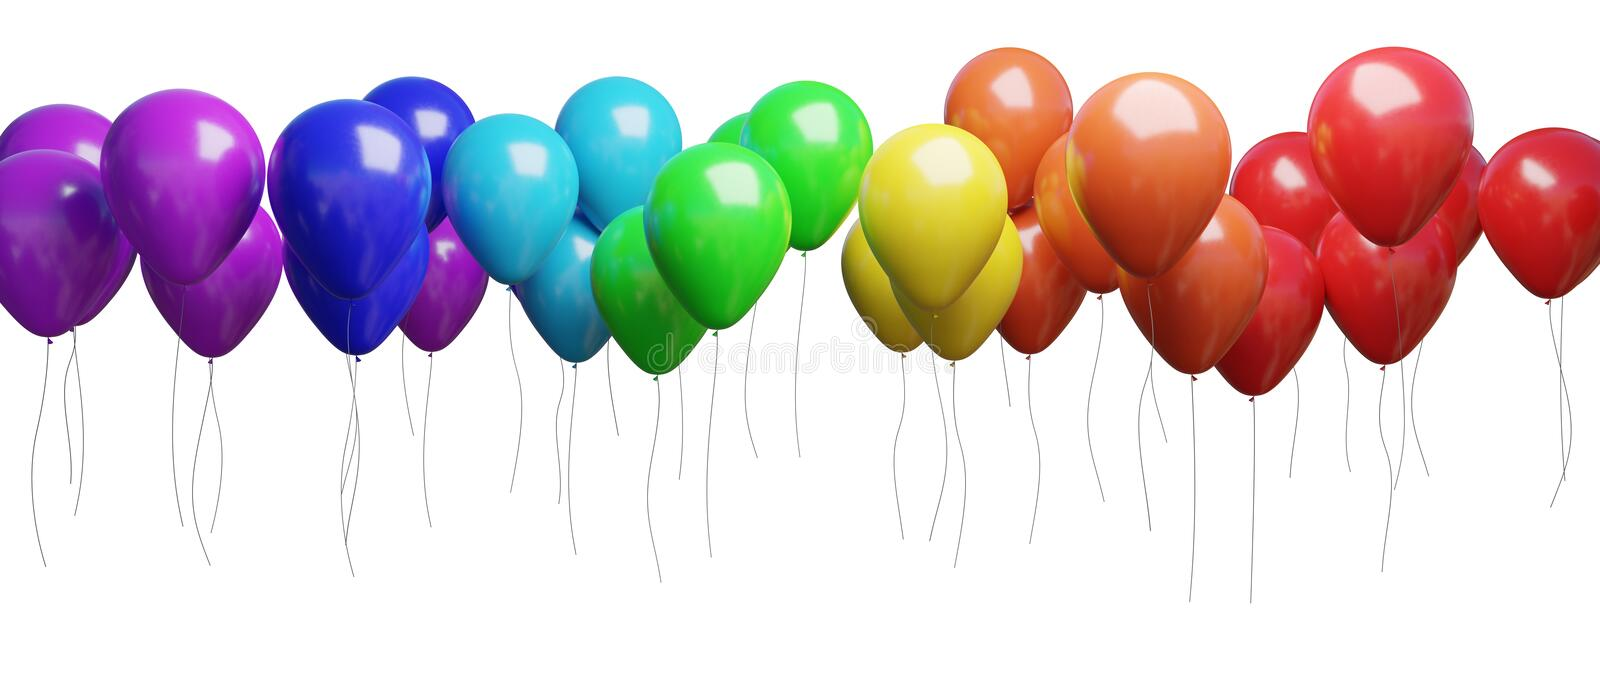 Many flying colorful balloons isolated on white background. 3D rendered illustration.  vector illustration